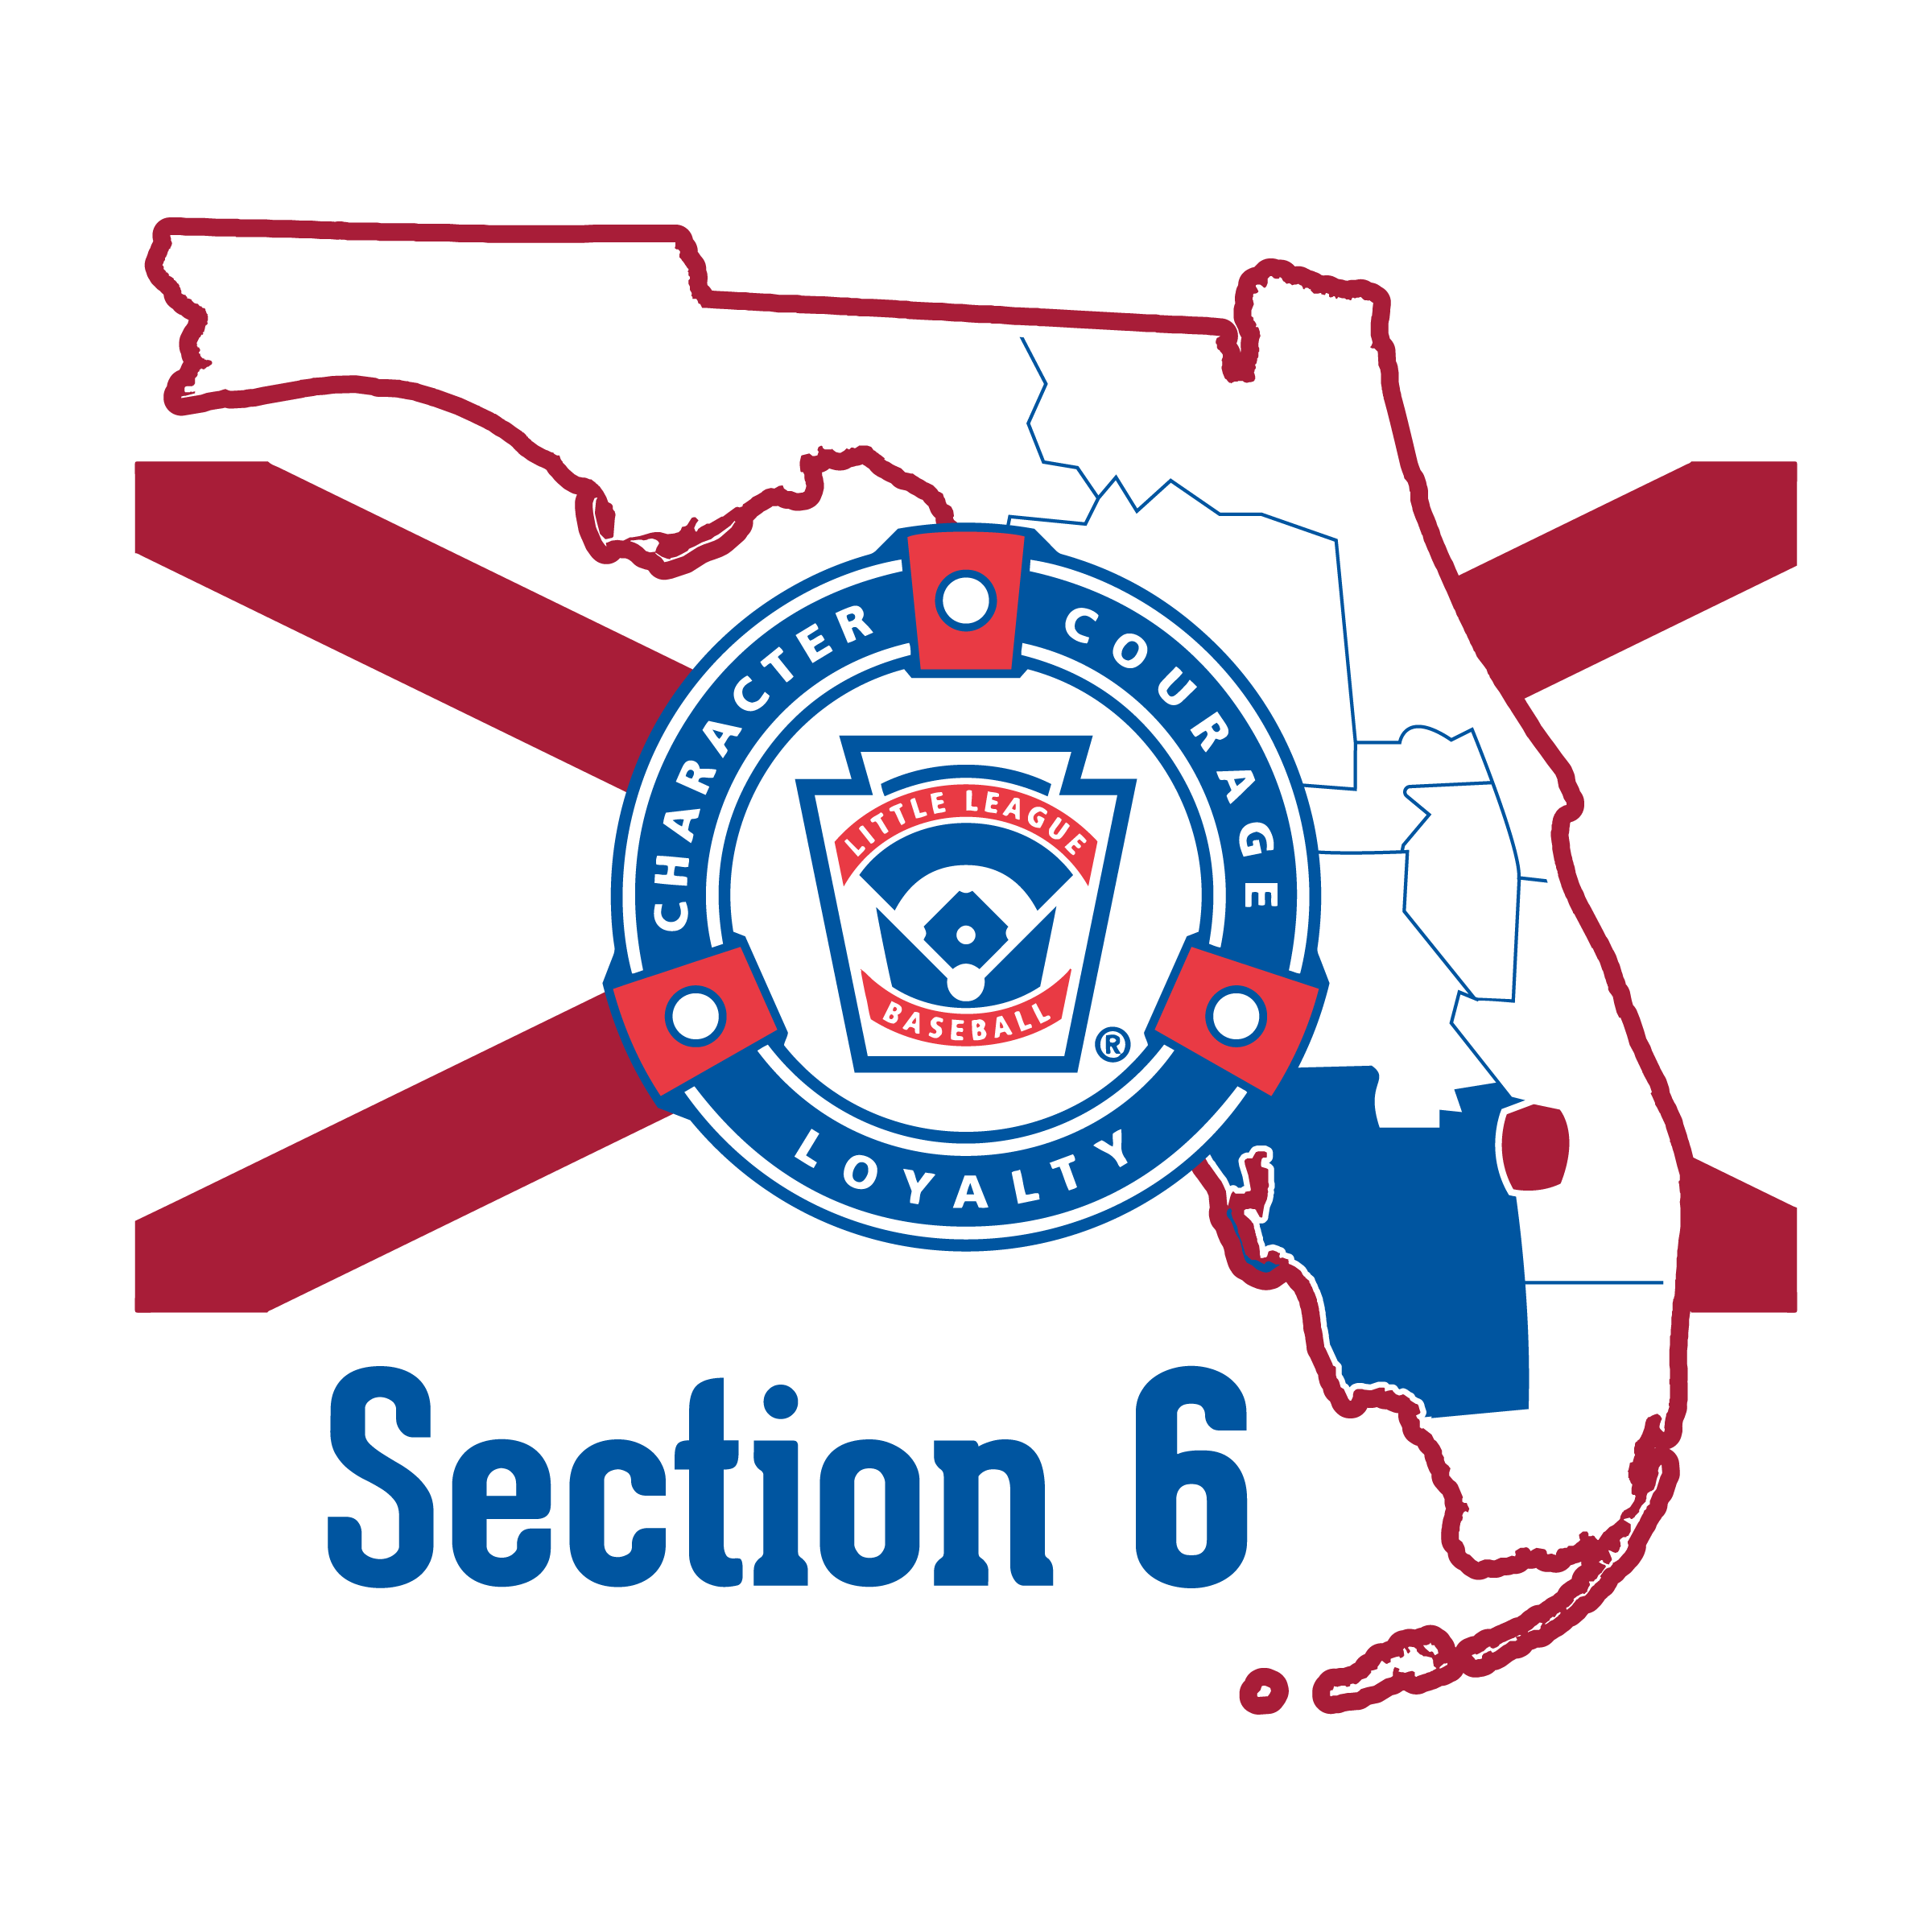 Florida Section 6